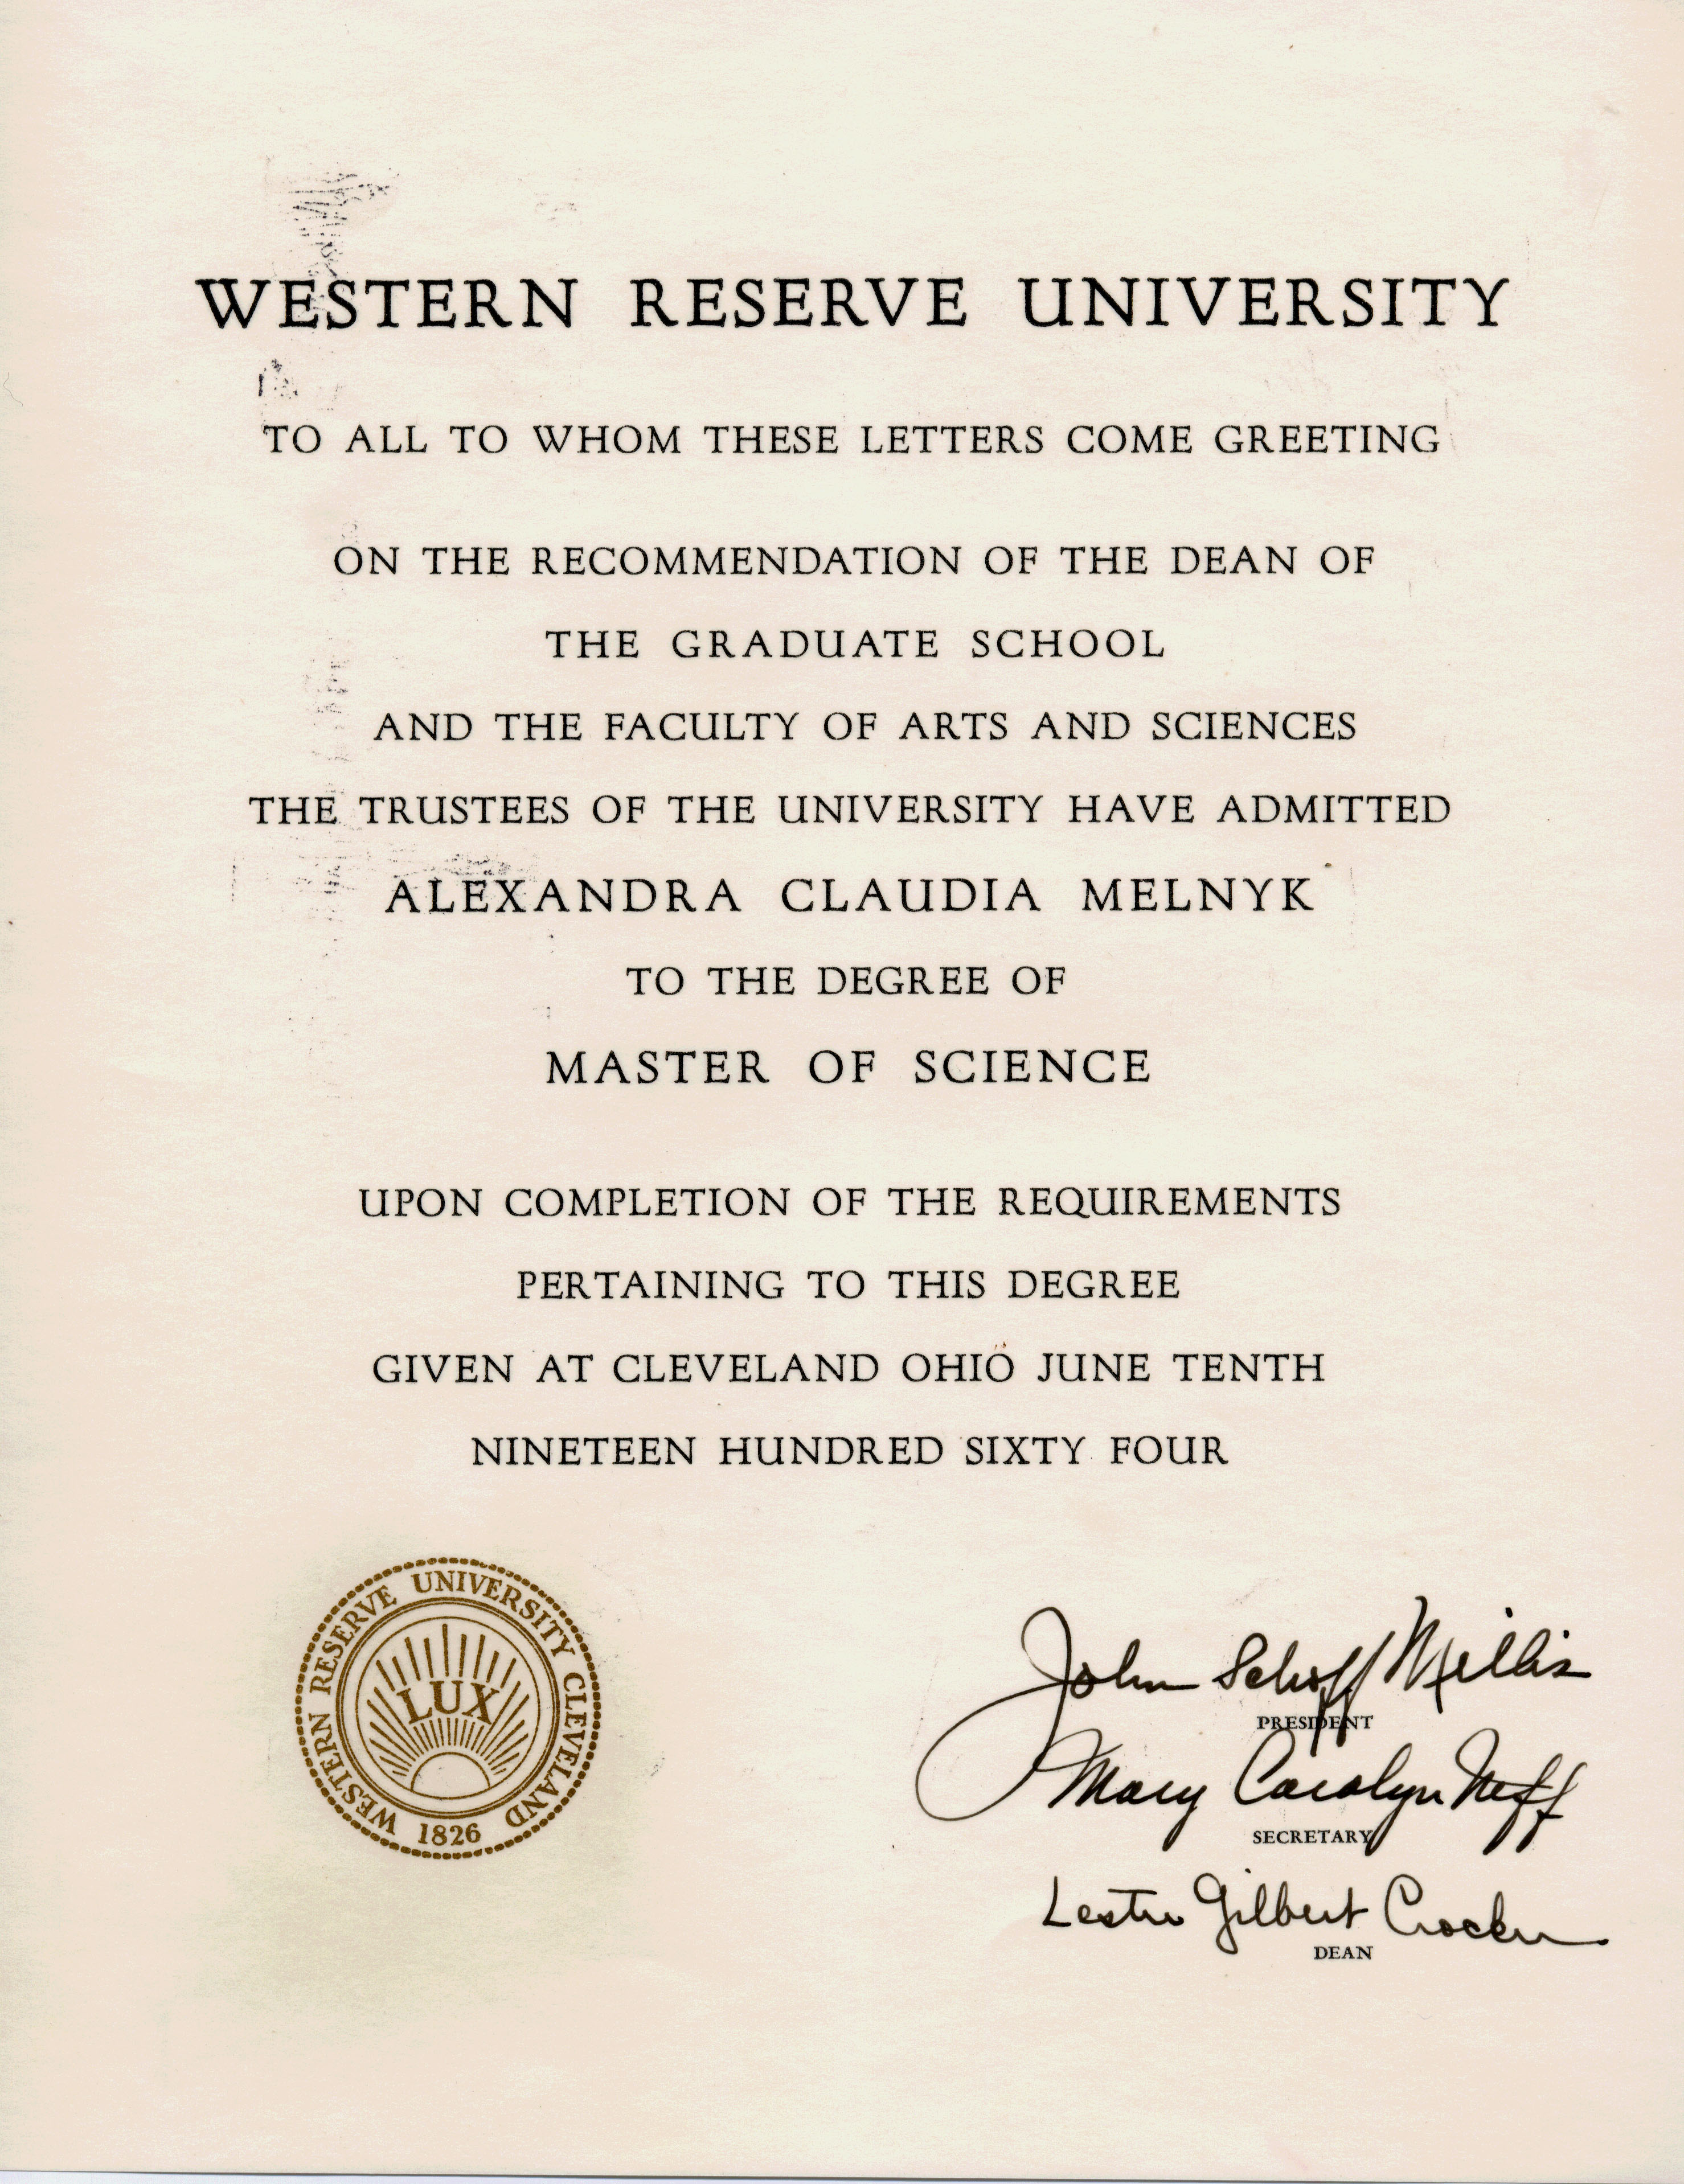 Masters Degree Certificate from Western Reserve University ...